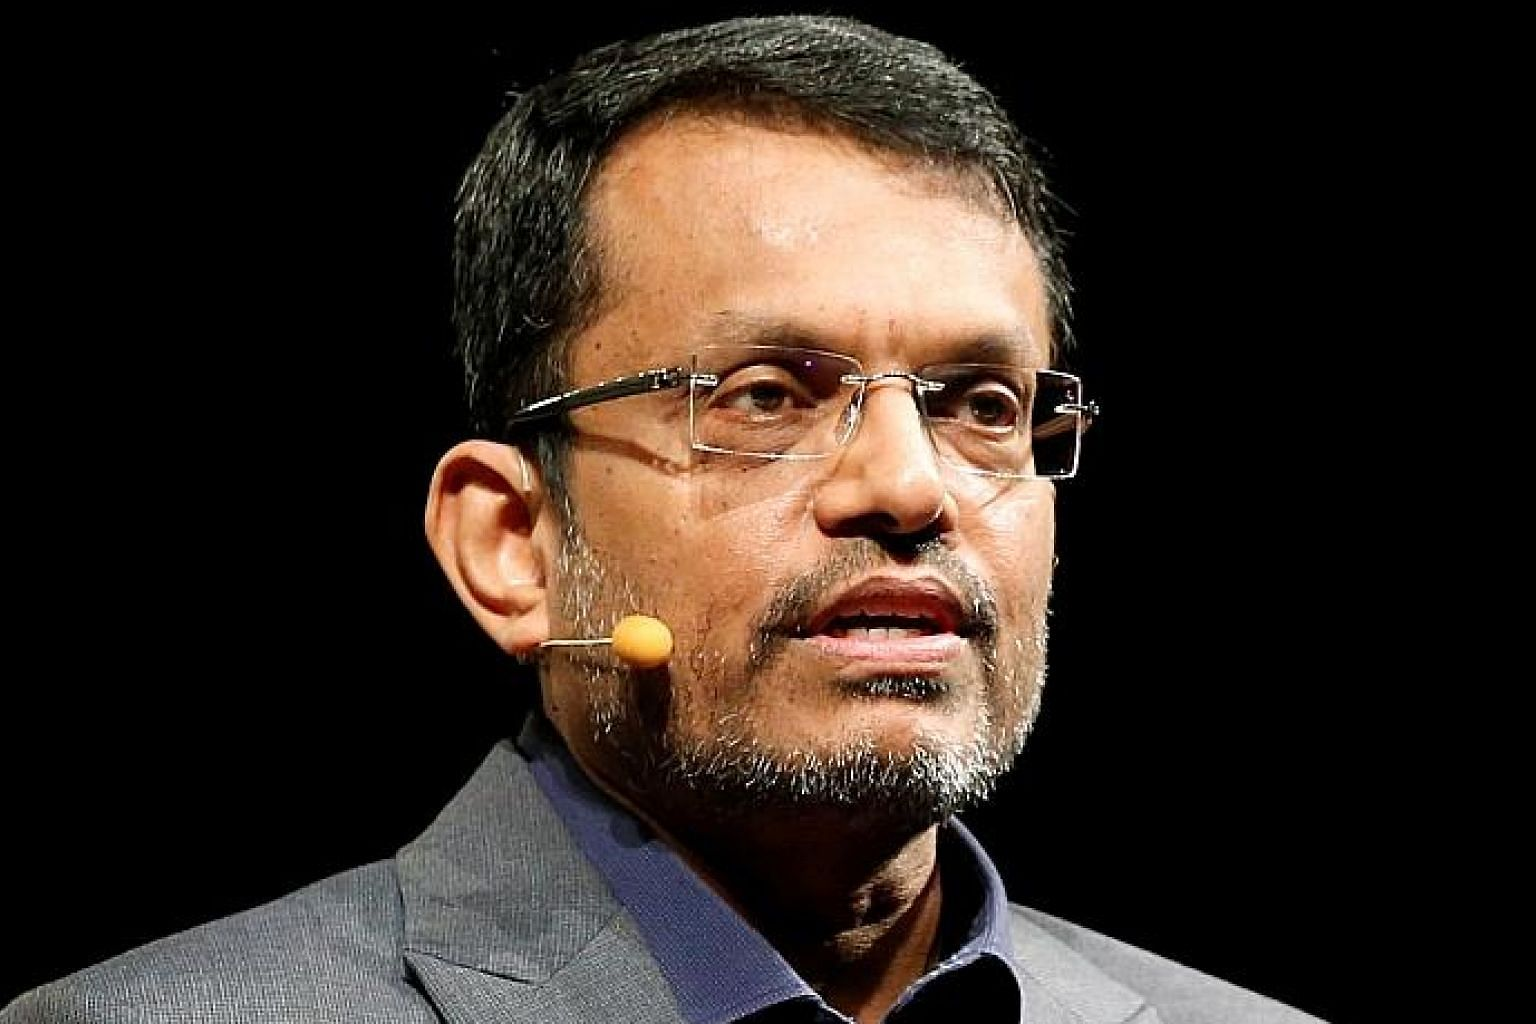 MAS managing director Ravi Menon framed his speech at the symposium as an imaginary address given in 2028.